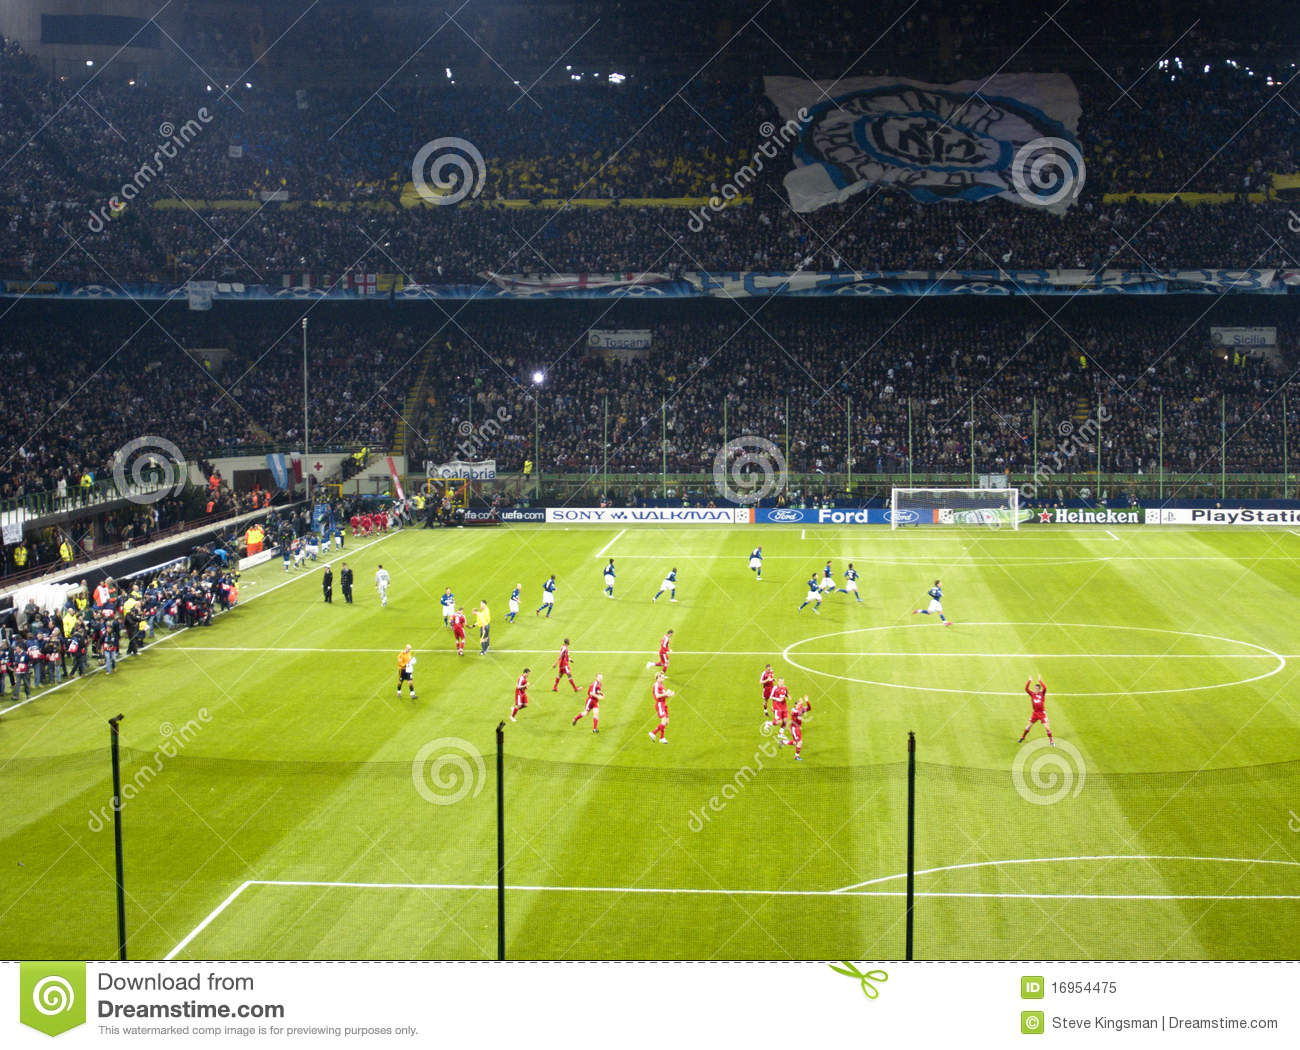 liverpool inter milan march 11 - photo#16